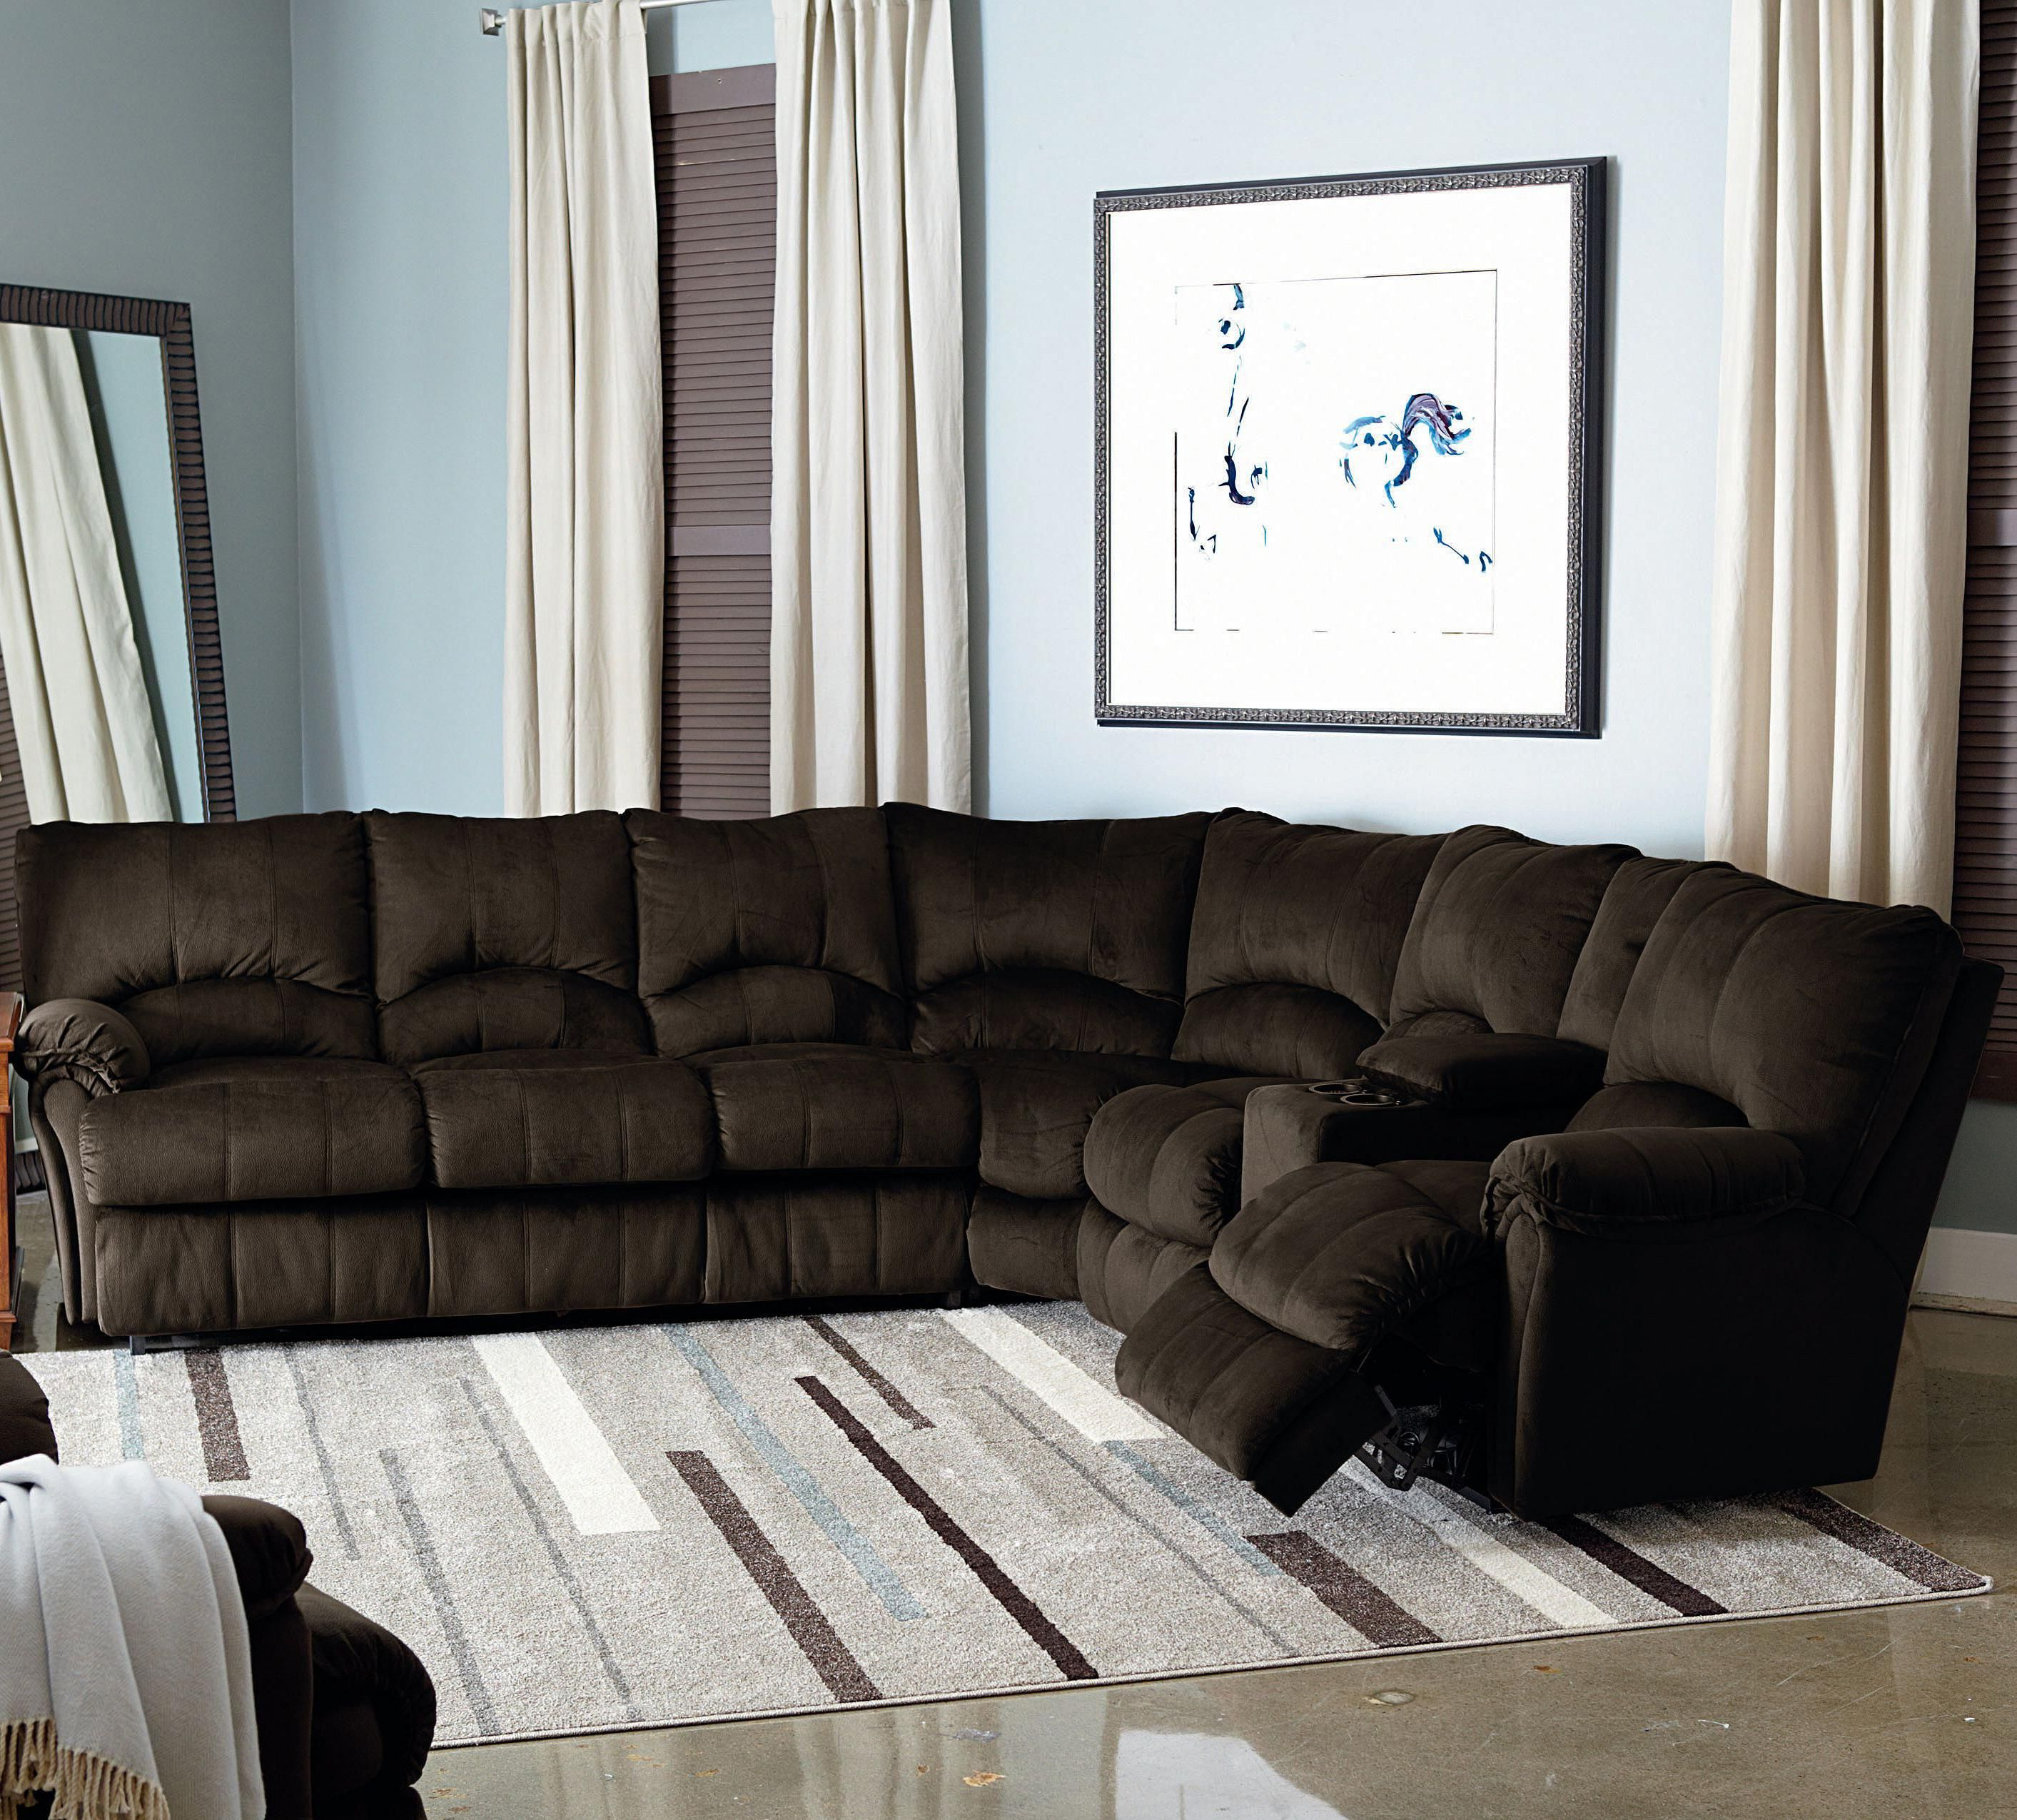 Table Behind Reclining Couch